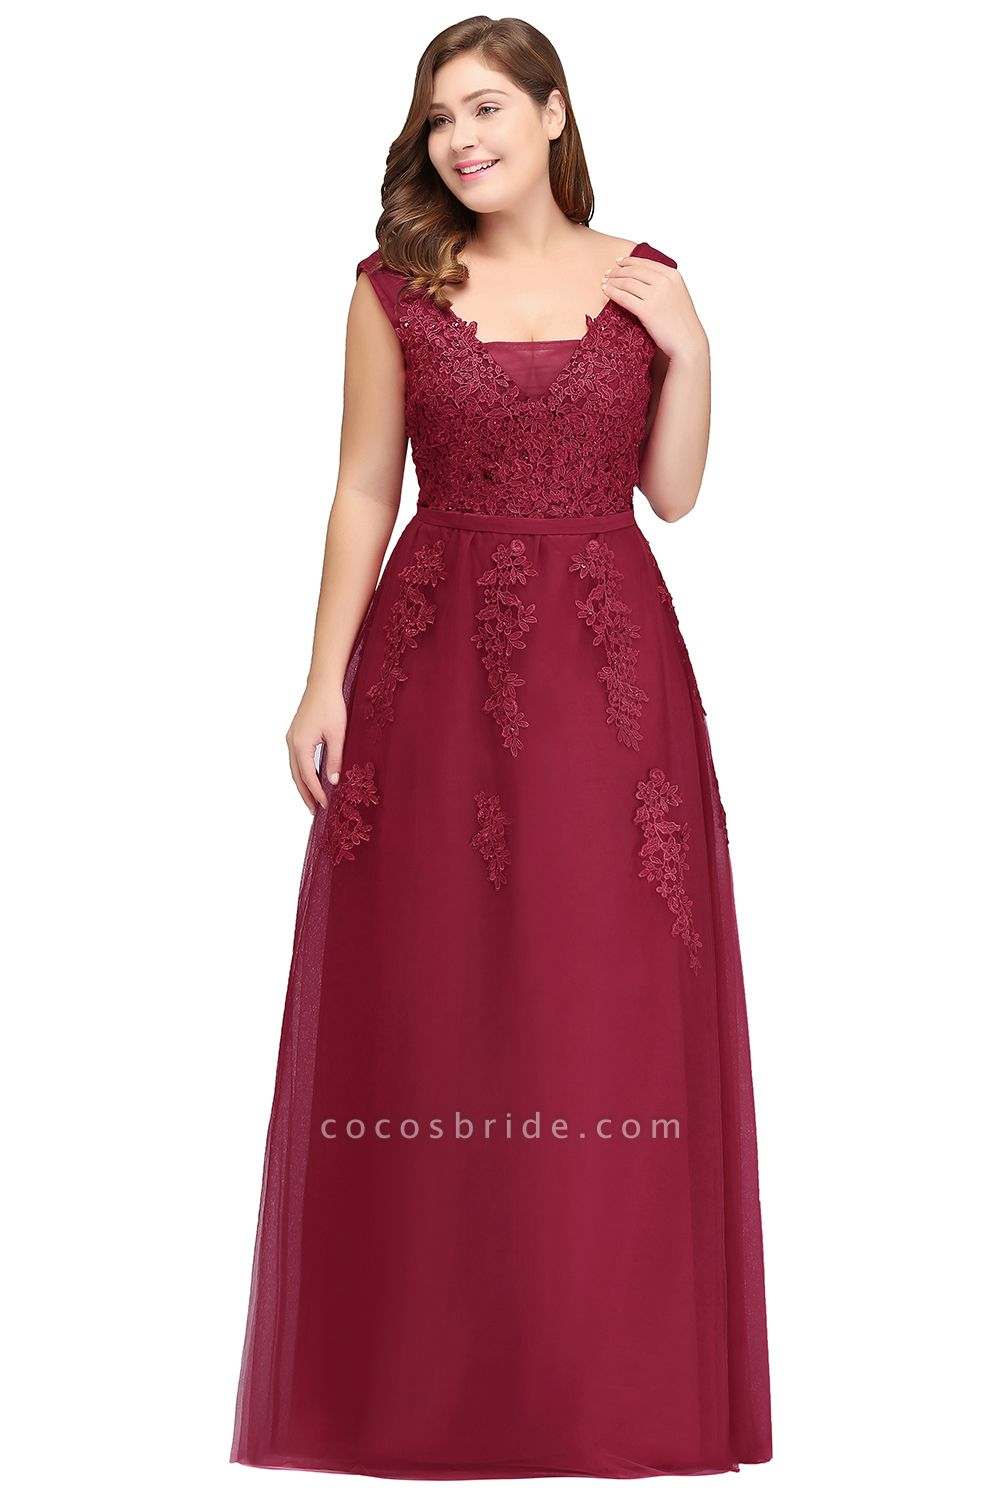 IRIS | A-Line Bateau Long Plus size Sleeveless Evening Dresses with Appliques